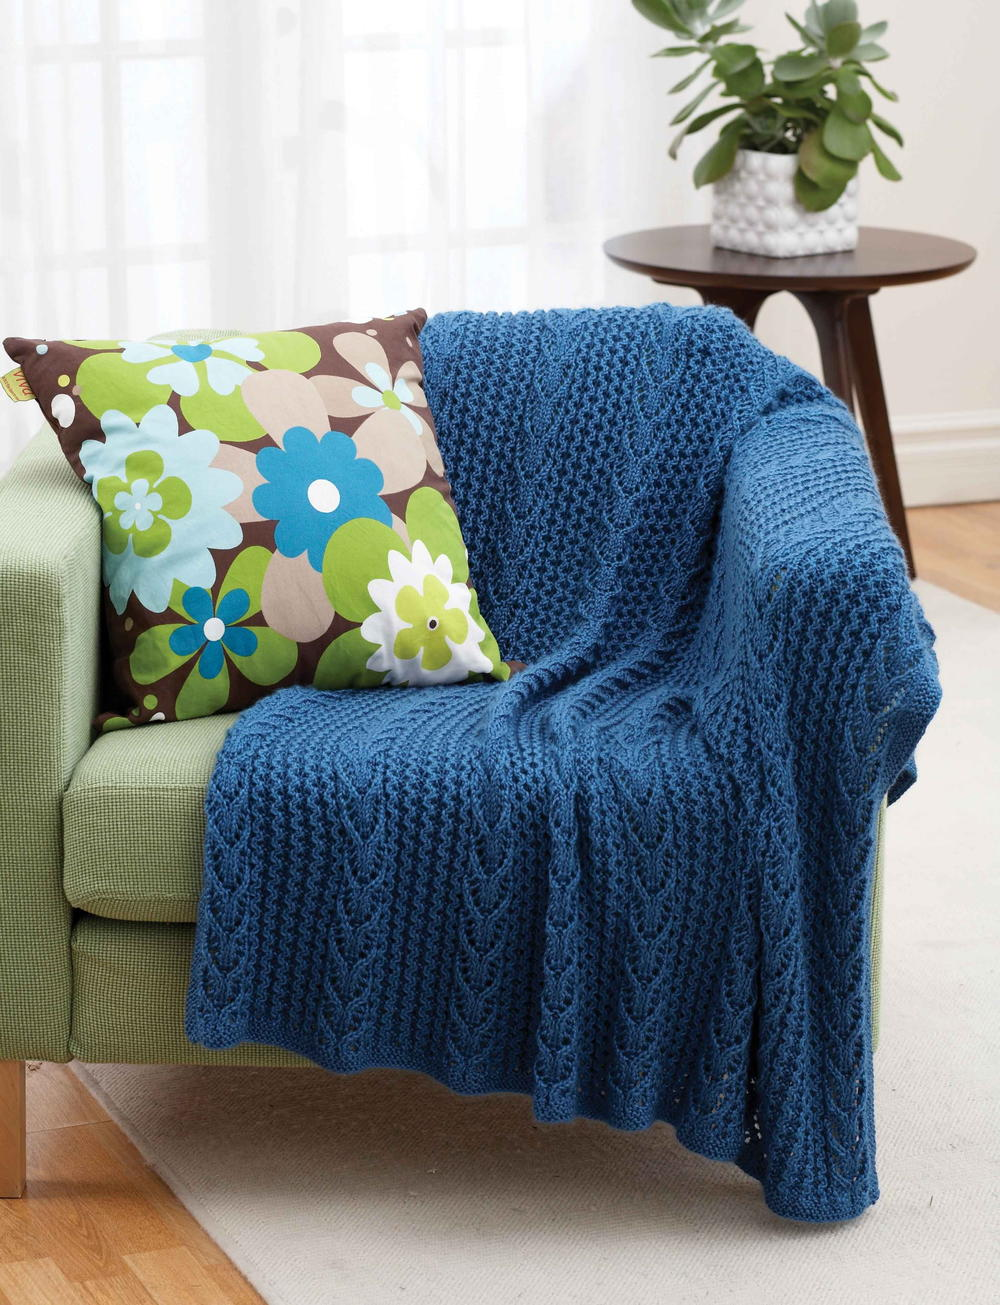 Blue Tide Lacy Throw Allfreeknitting Com